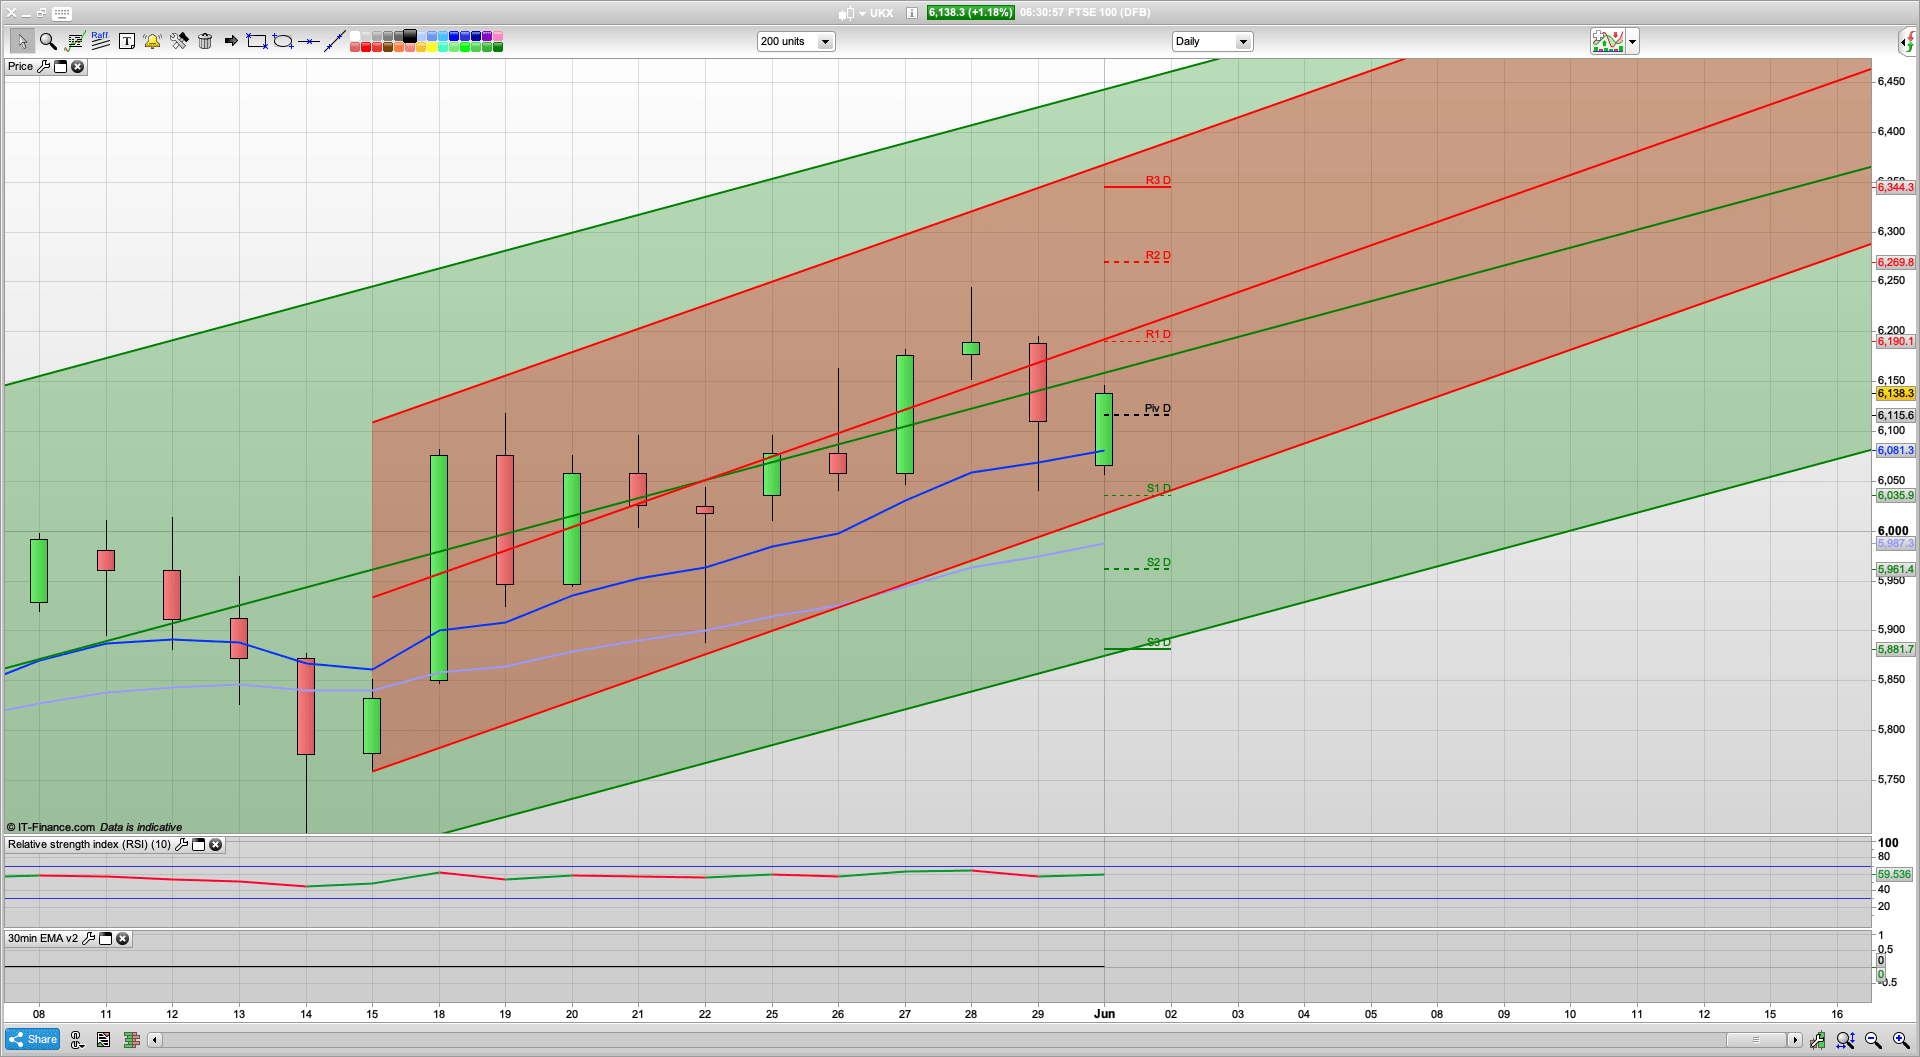 Bulls still in charge but resistance at 6190 | 6235 above that | 6100 6062 support